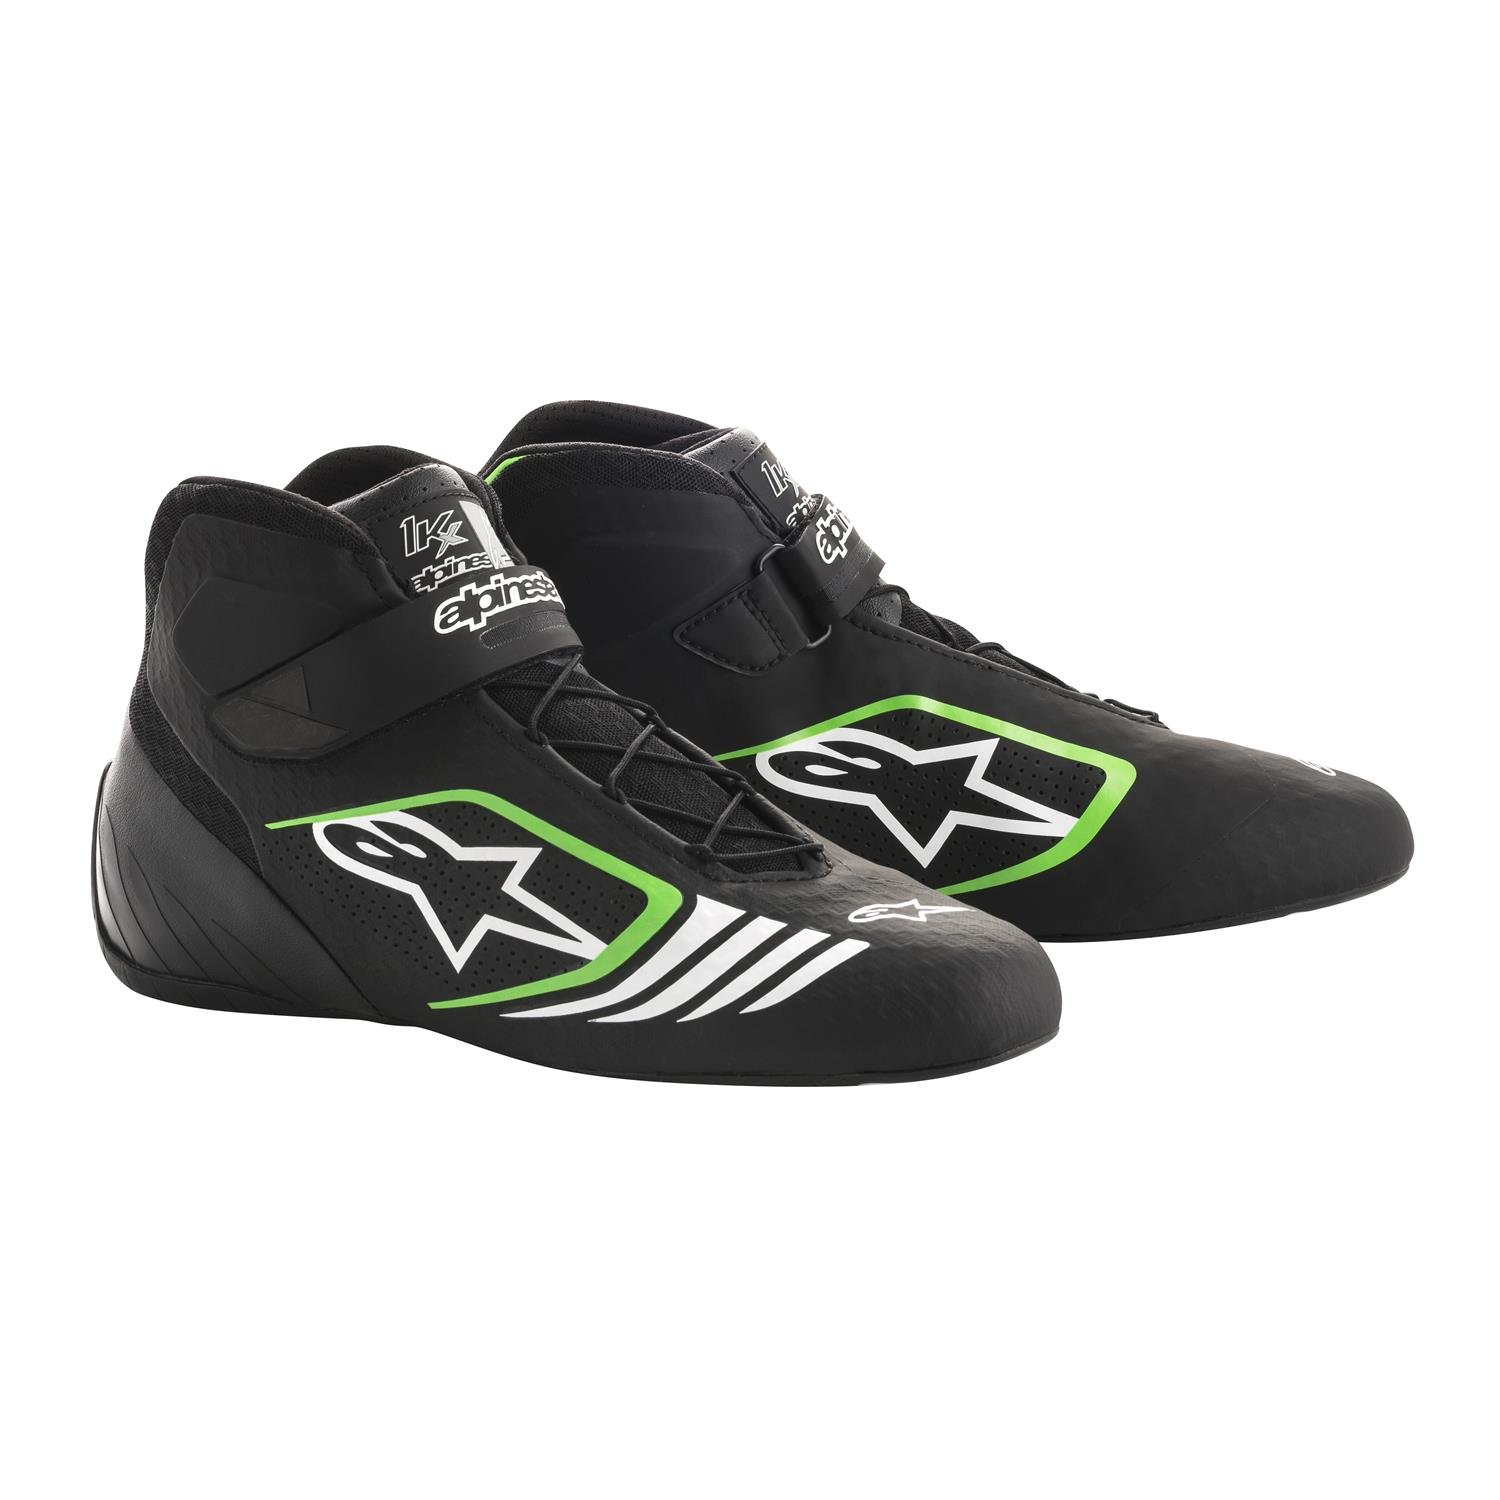 alpinestars(アルパインスターズ) TECH 1-KX KART SHOES BLACK GREEN 9.5 2712118-1069-9 B076Q6D4ND